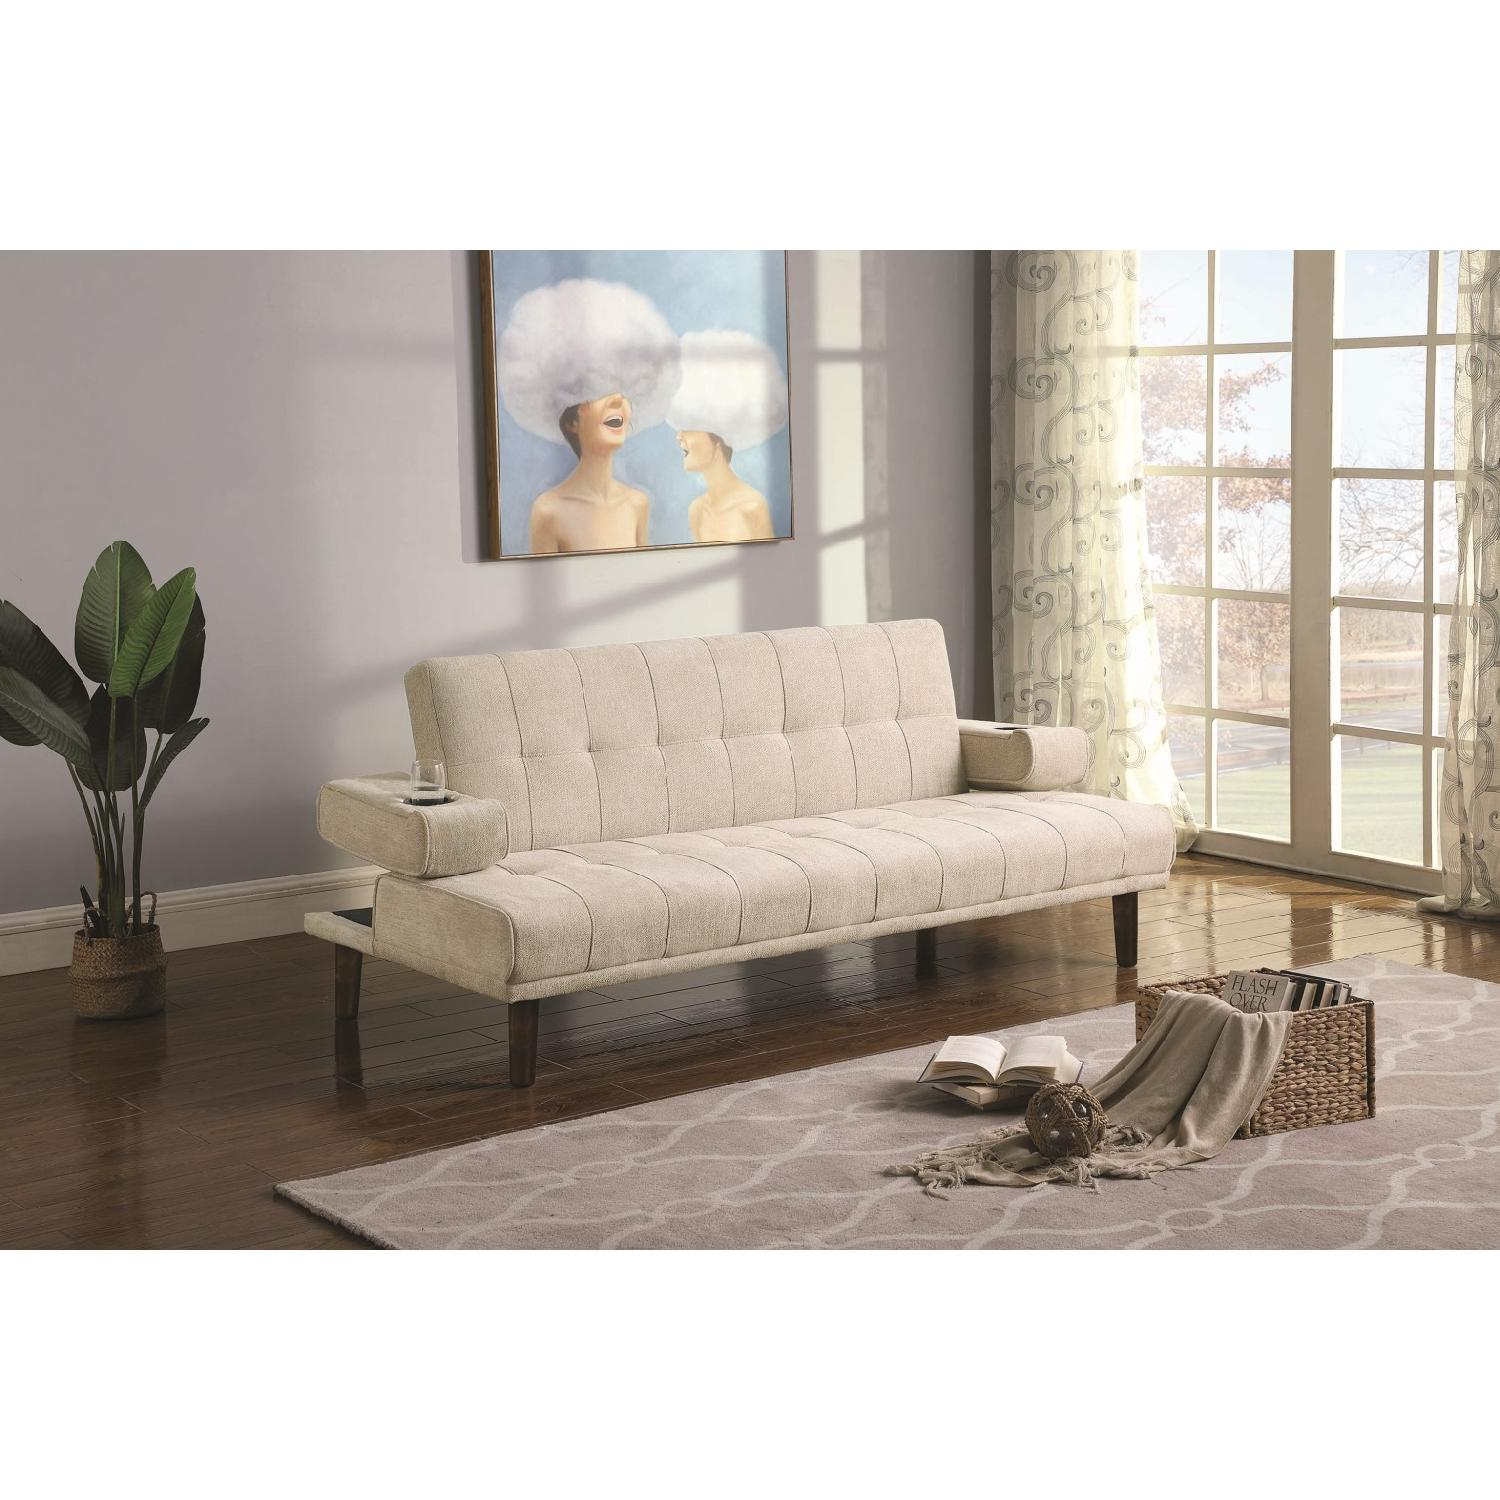 Sofabed w/ Cupholder Armrests in Beige Chenille Fabric - image-6